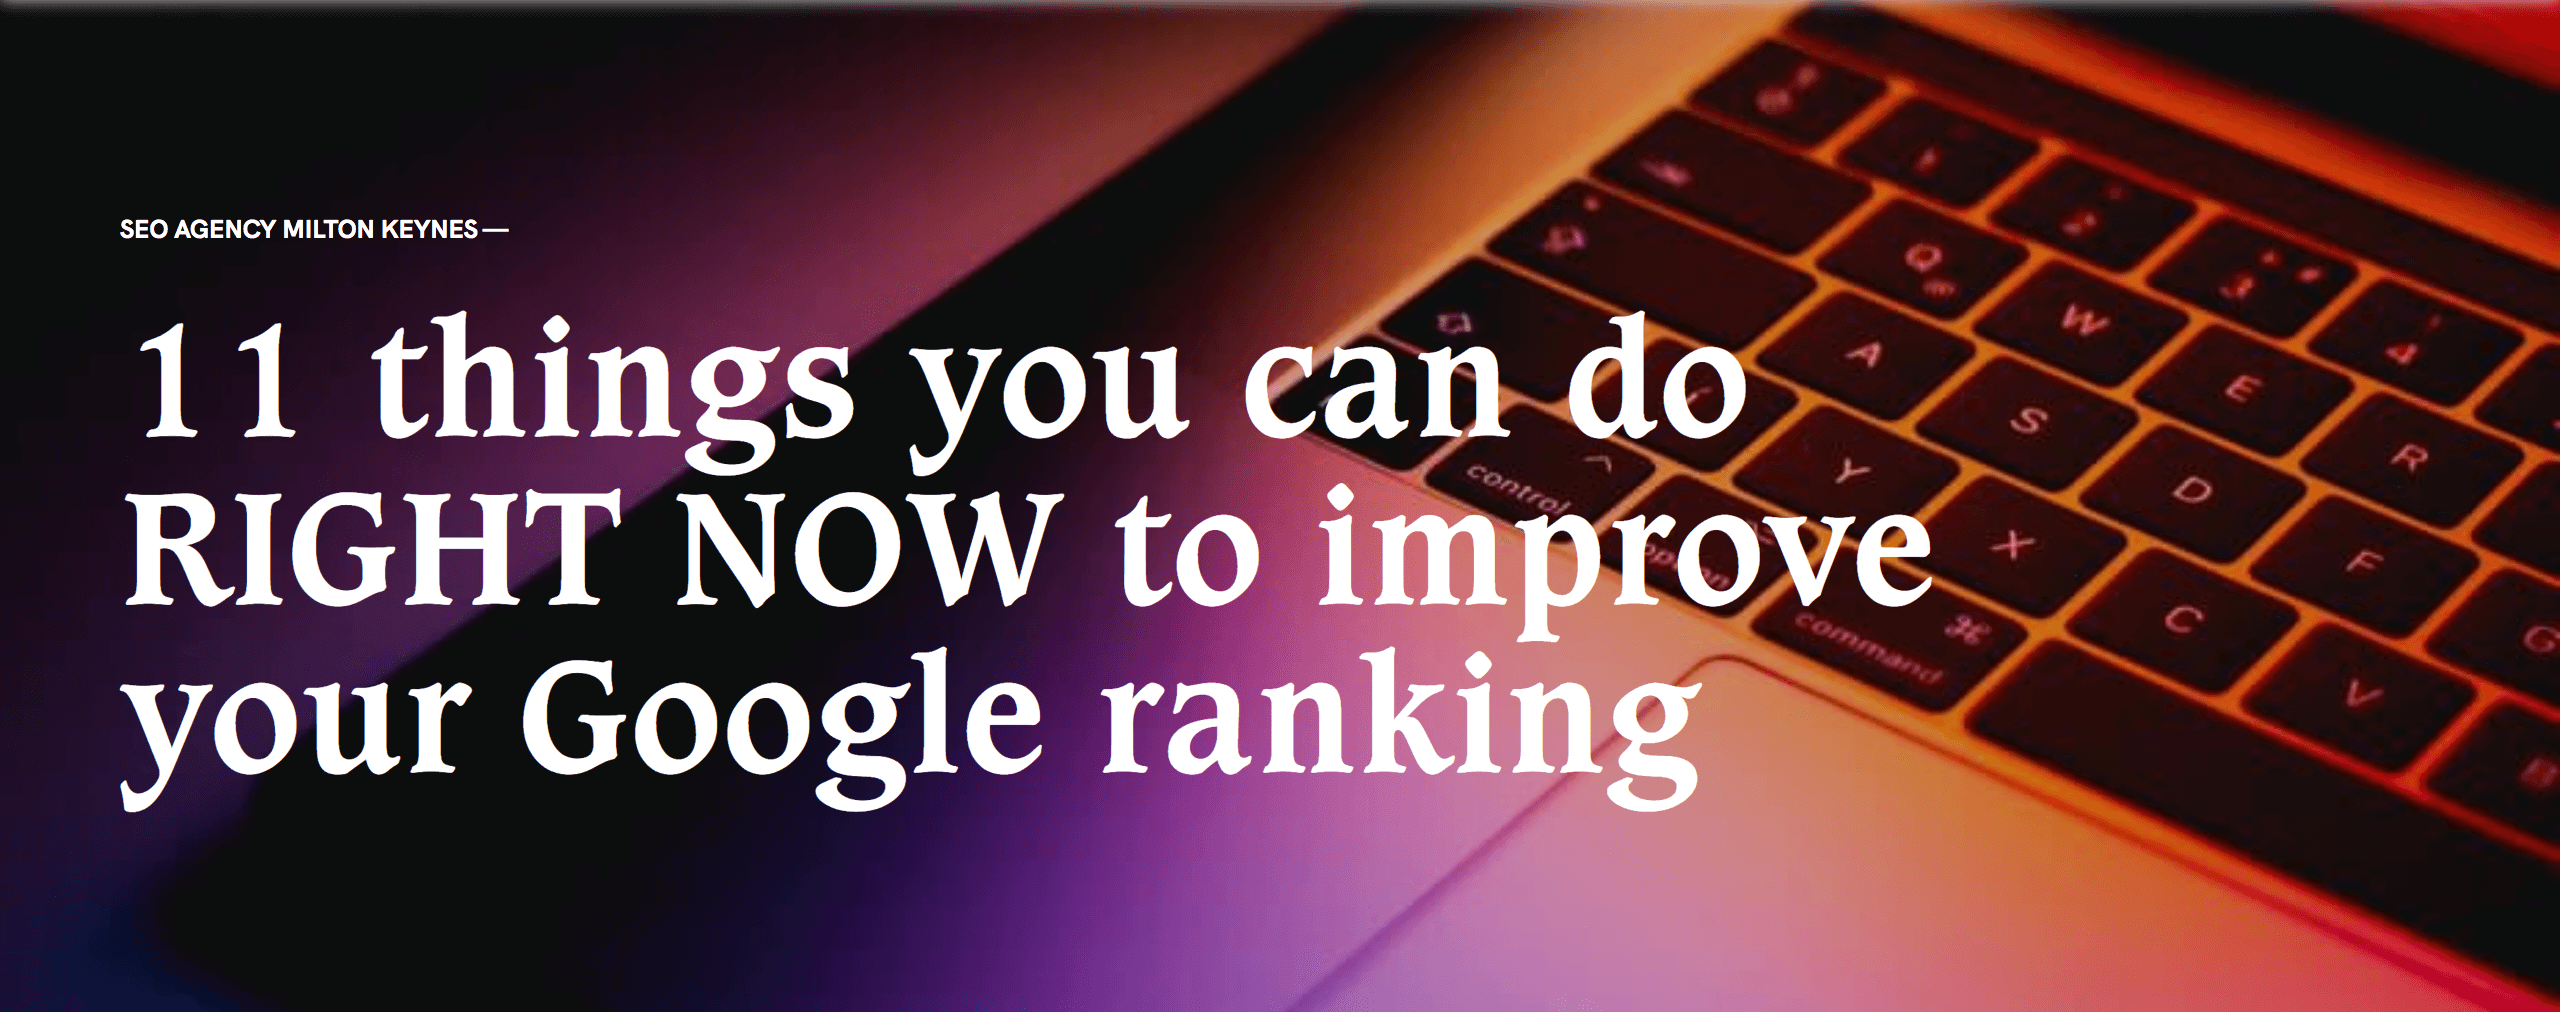 11 things to improve your google ranking header image